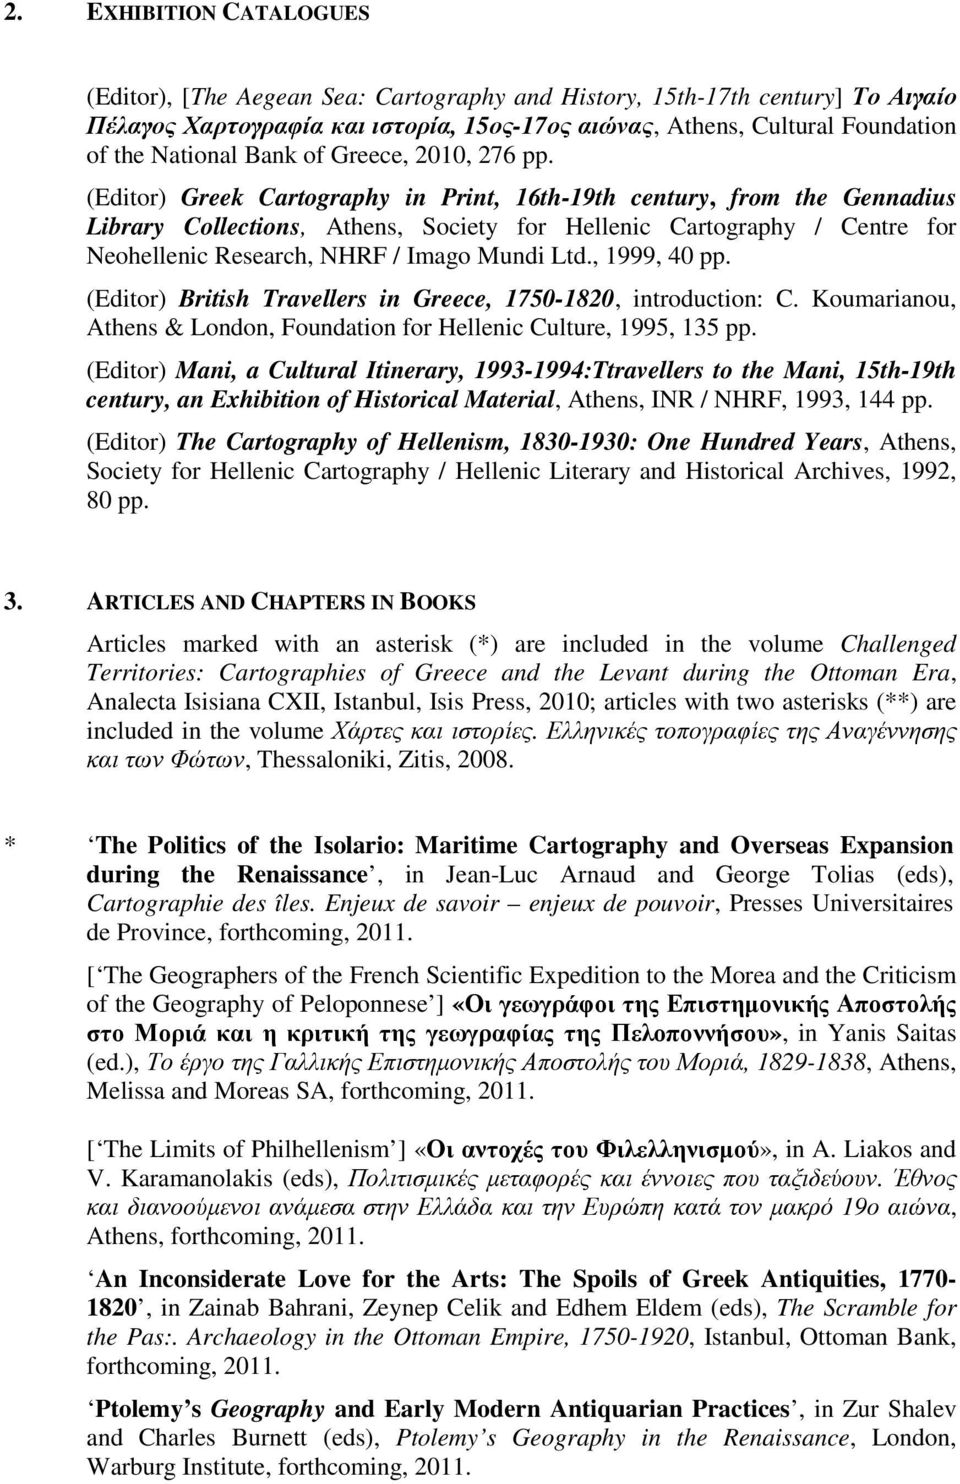 (Editor) Greek Cartography in Print, 16th-19th century, from the Gennadius Library Collections, Athens, Society for Hellenic Cartography / Centre for Neohellenic Research, NHRF / Imago Mundi Ltd.